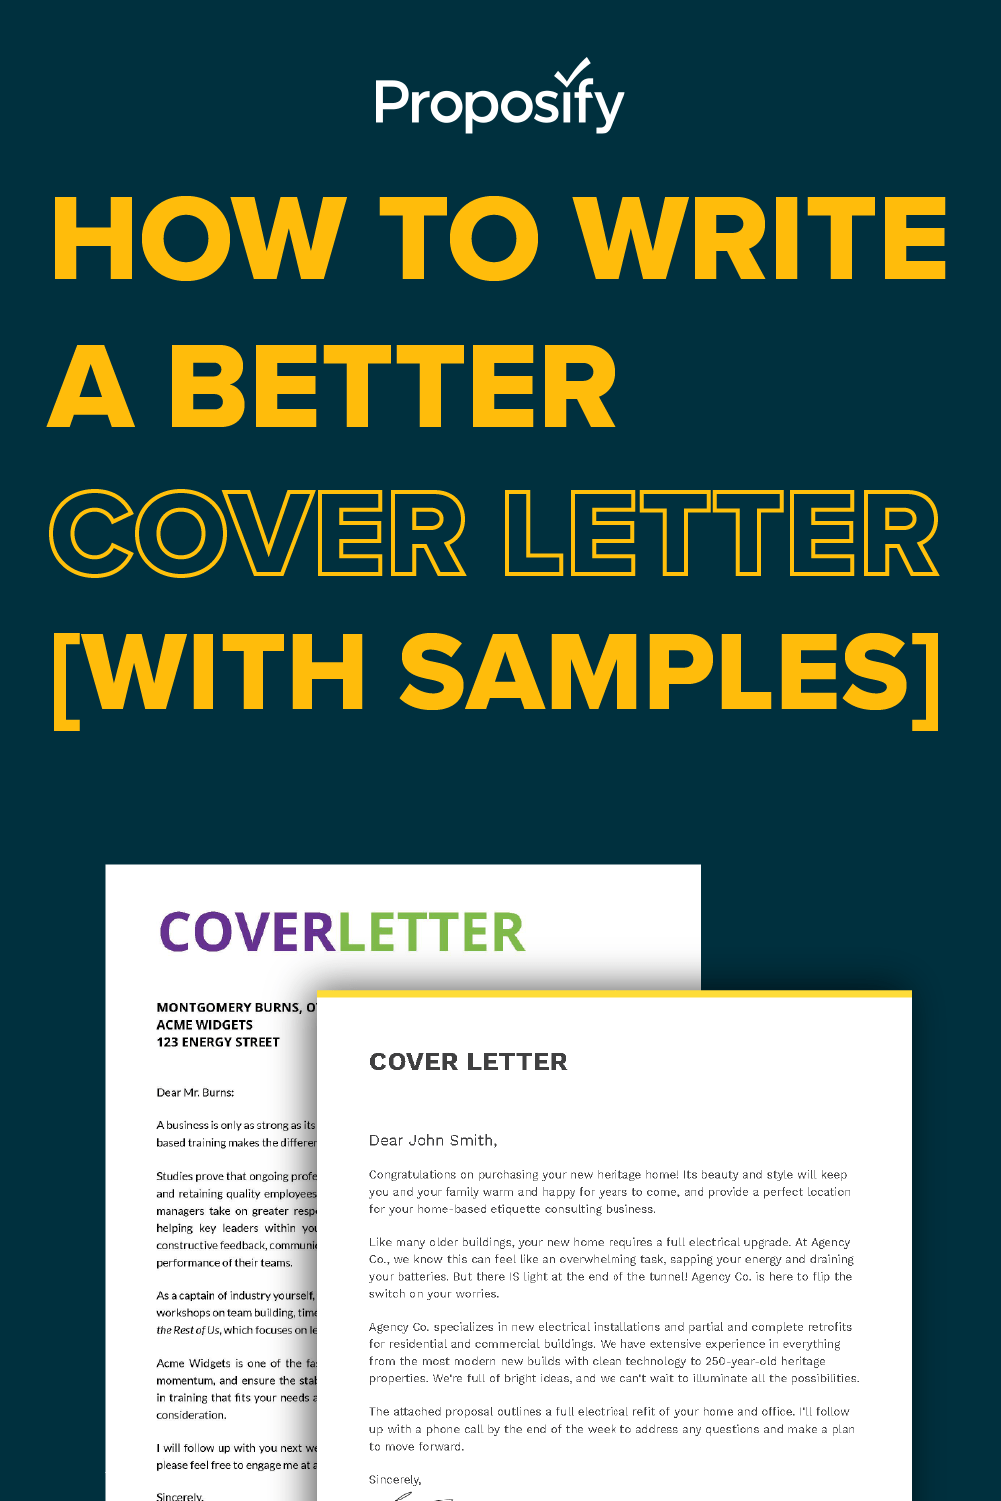 5 Simple Steps to Writing a Better Proposal Cover Letter ...